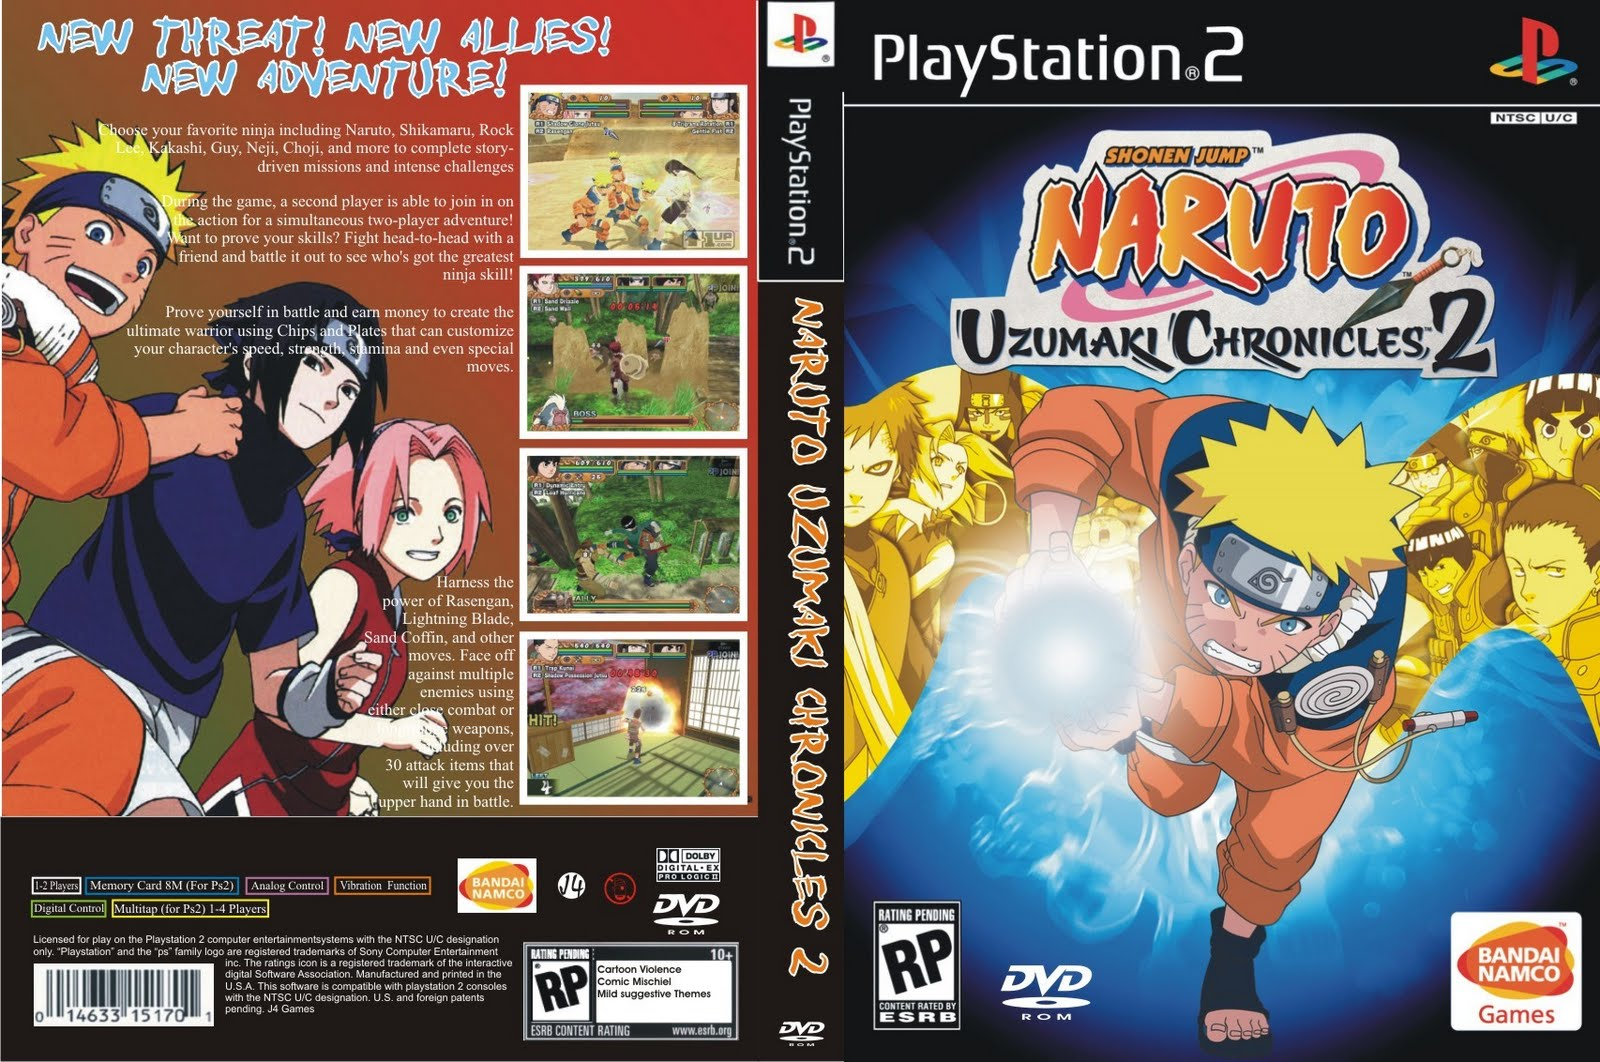 Download Naruto Uzumaki Chronicles 2 Ps2 Games | Auto ...